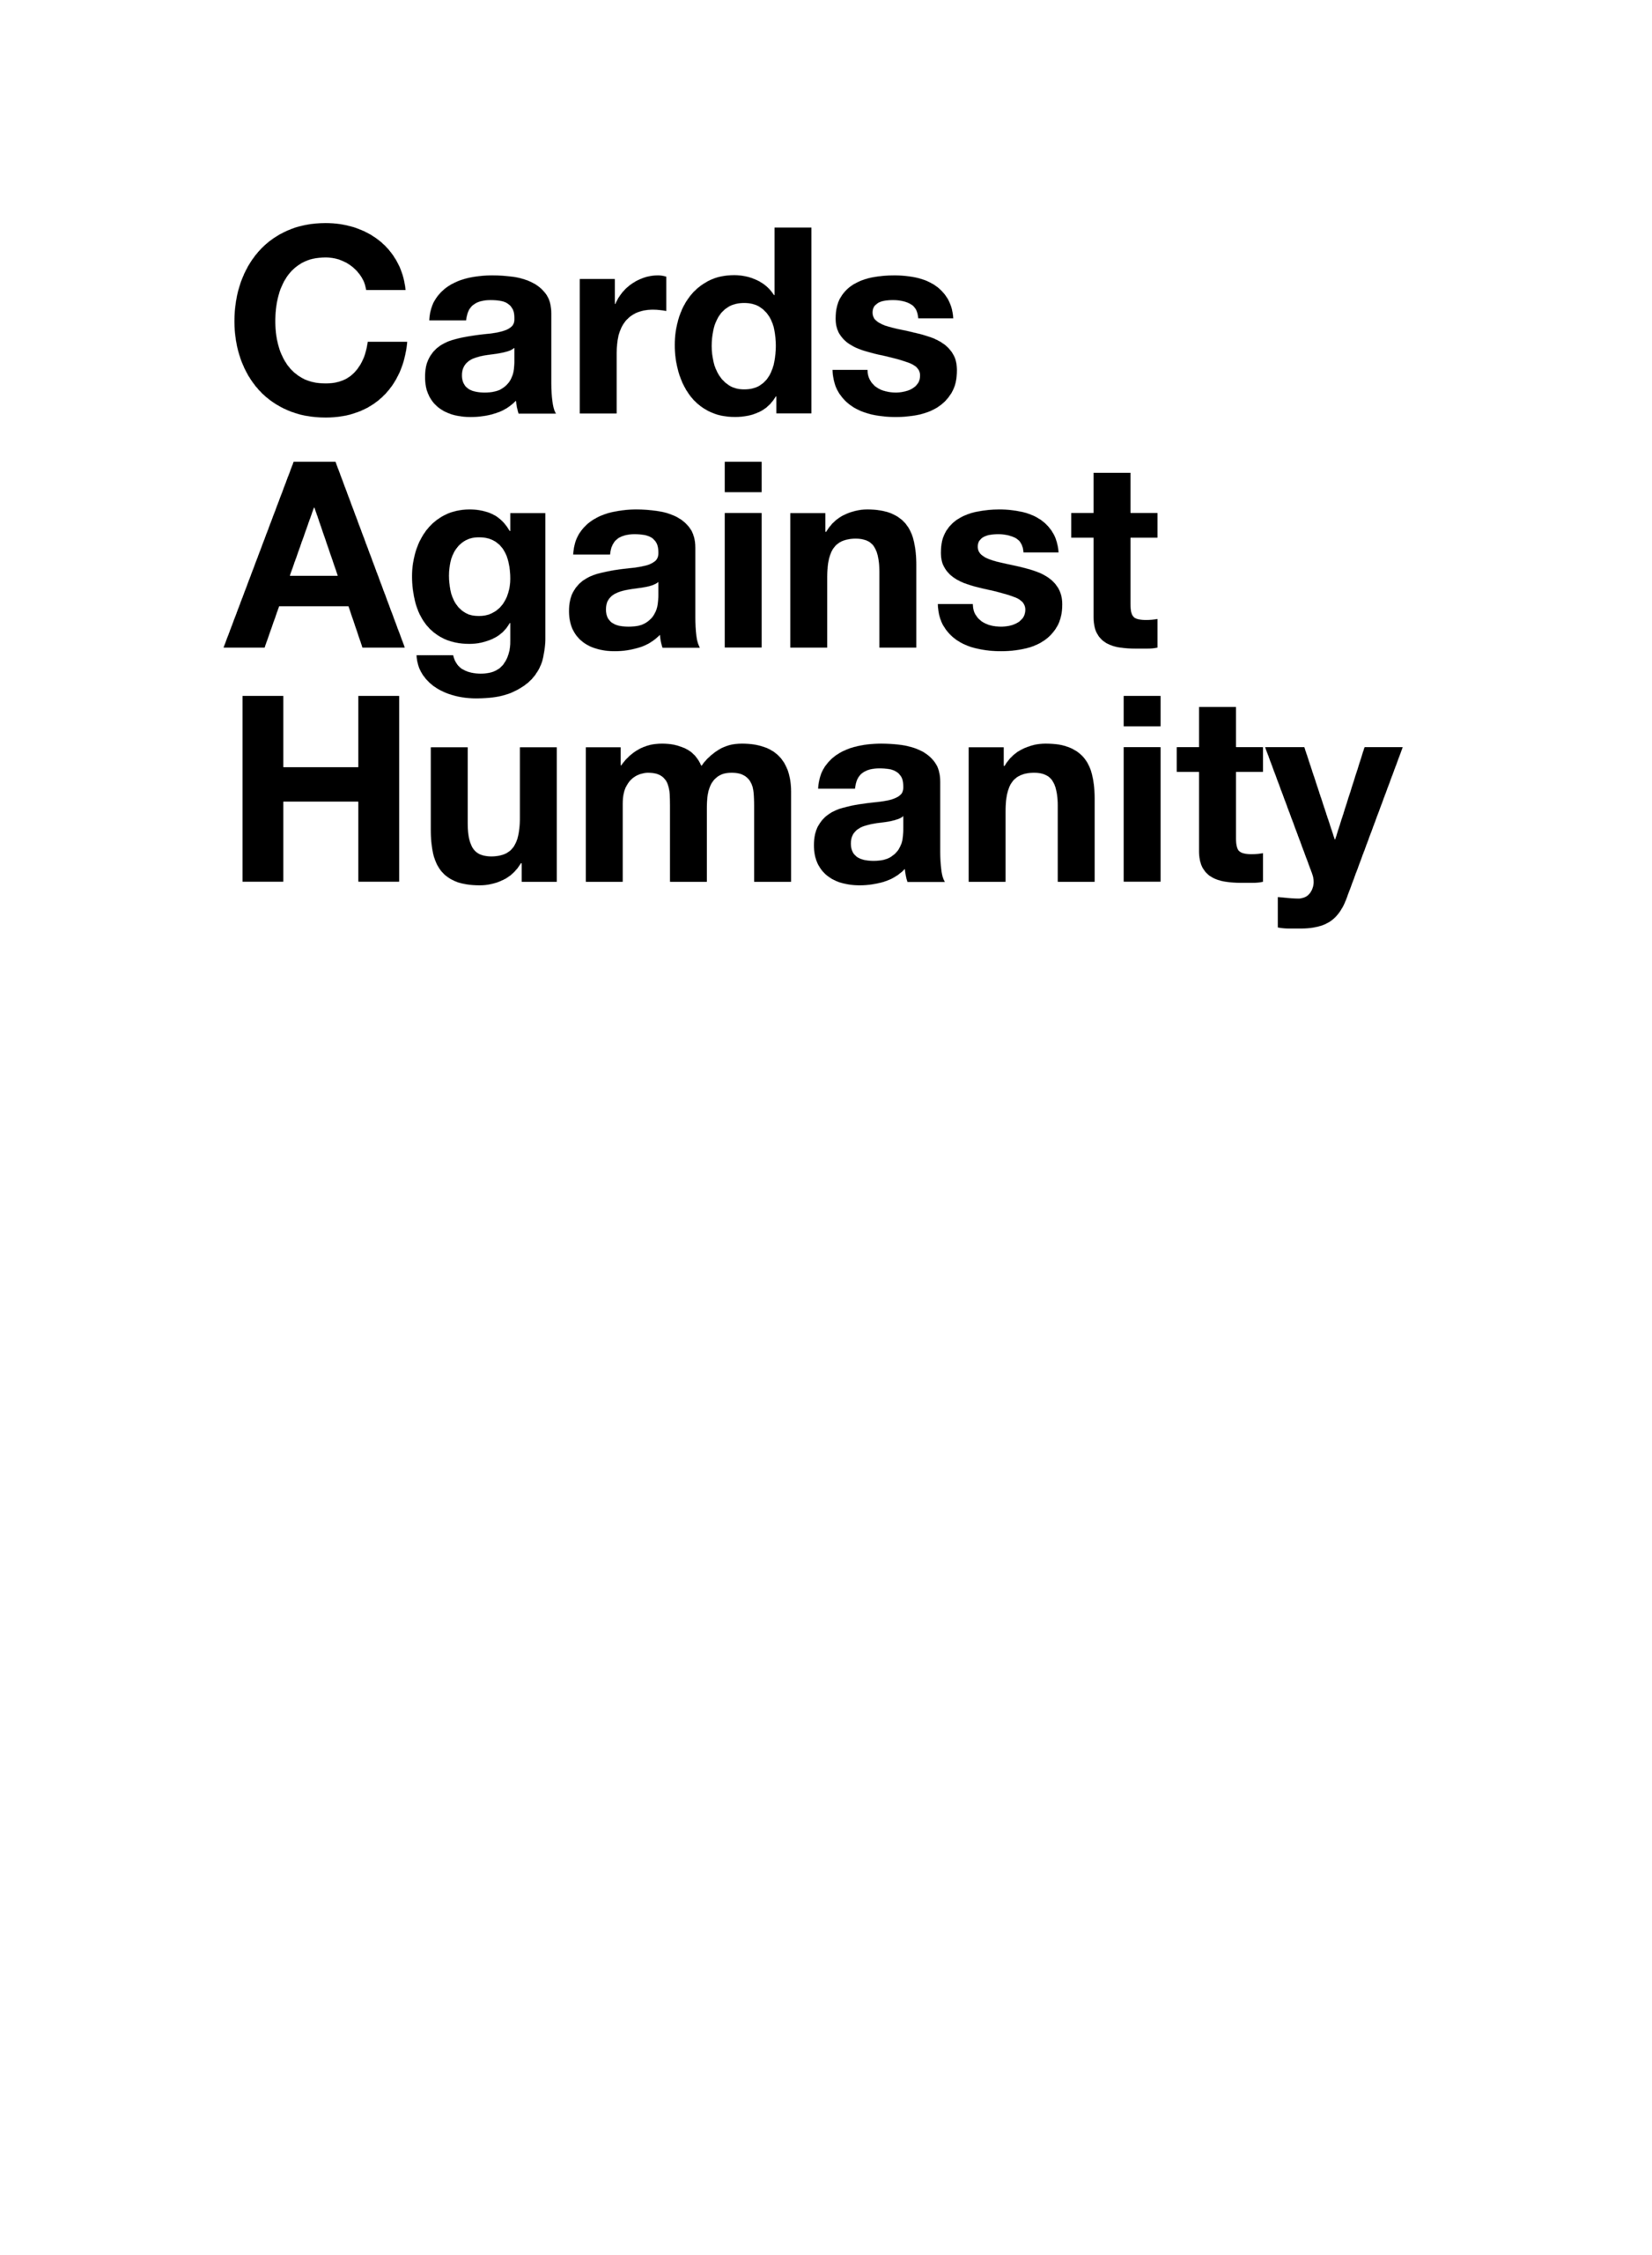 Cards Against Humanity - Card Generator Intended For Cards Against Humanity Template